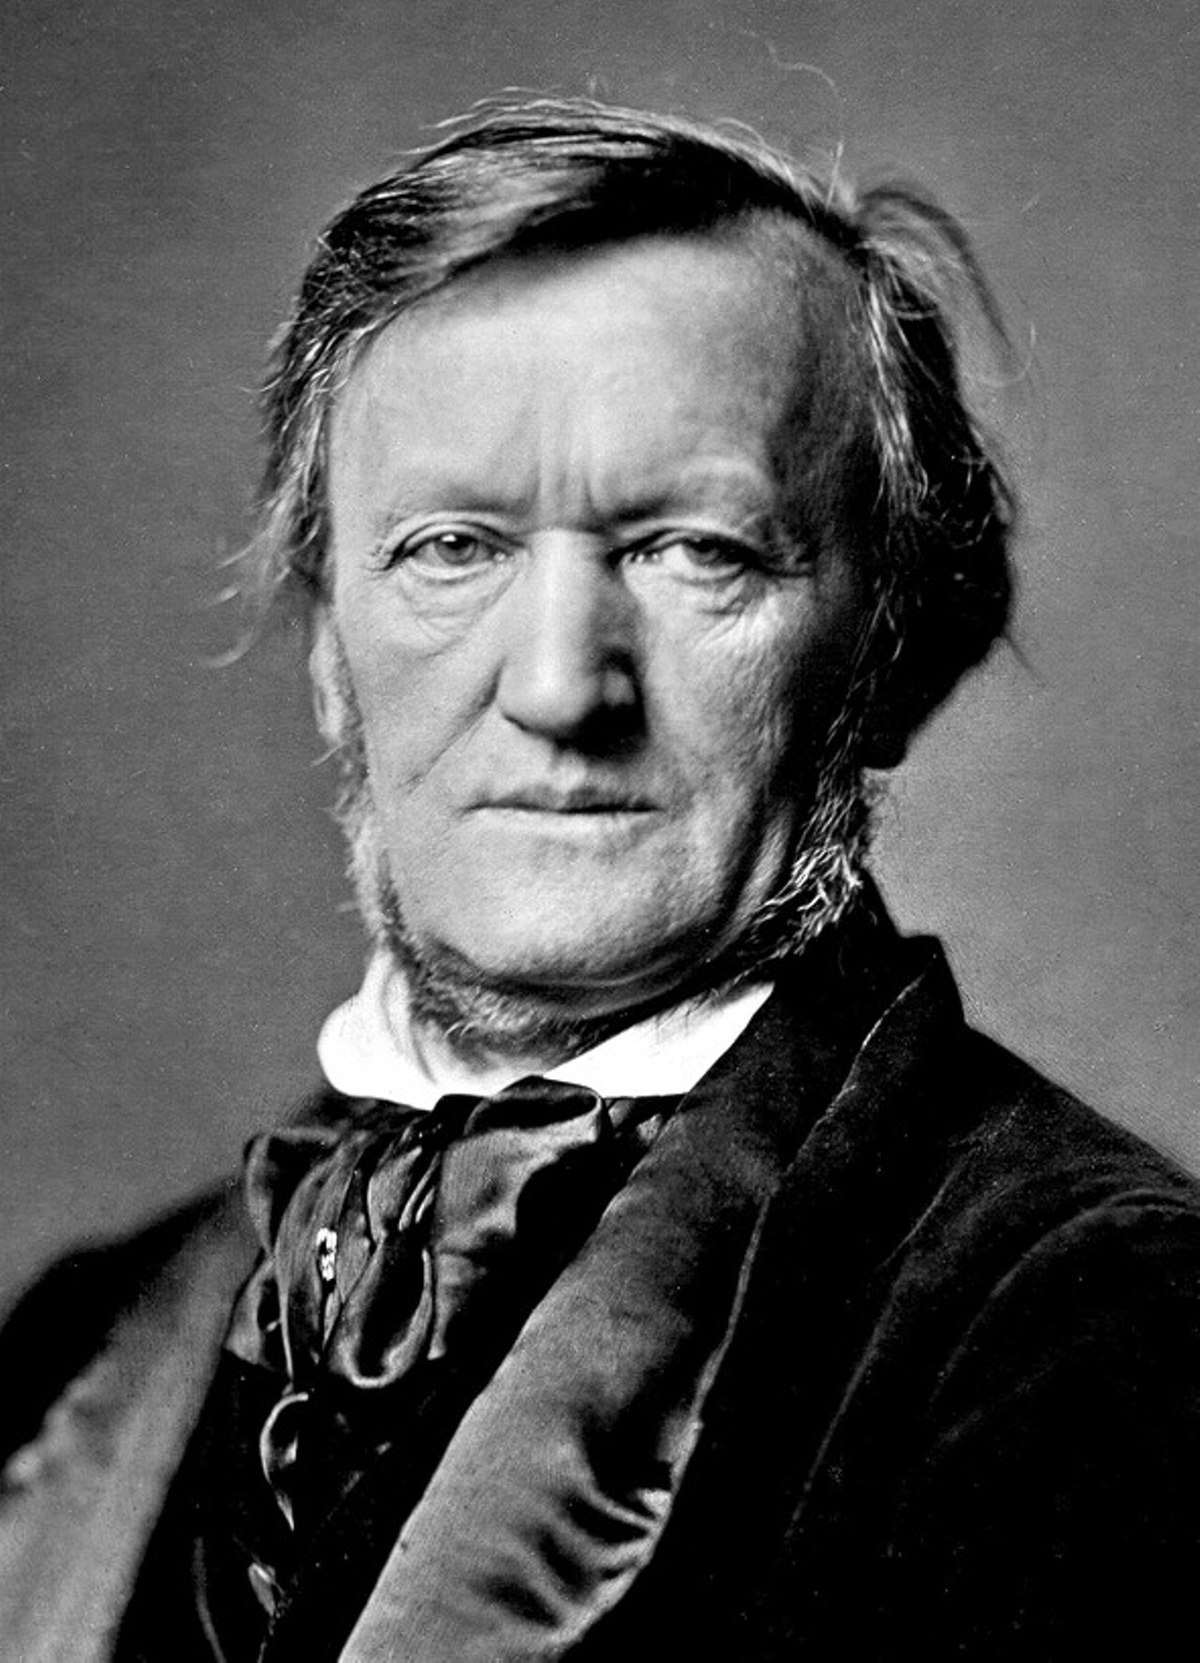 Richard wagner wikipedia - Bourgeois foto ...